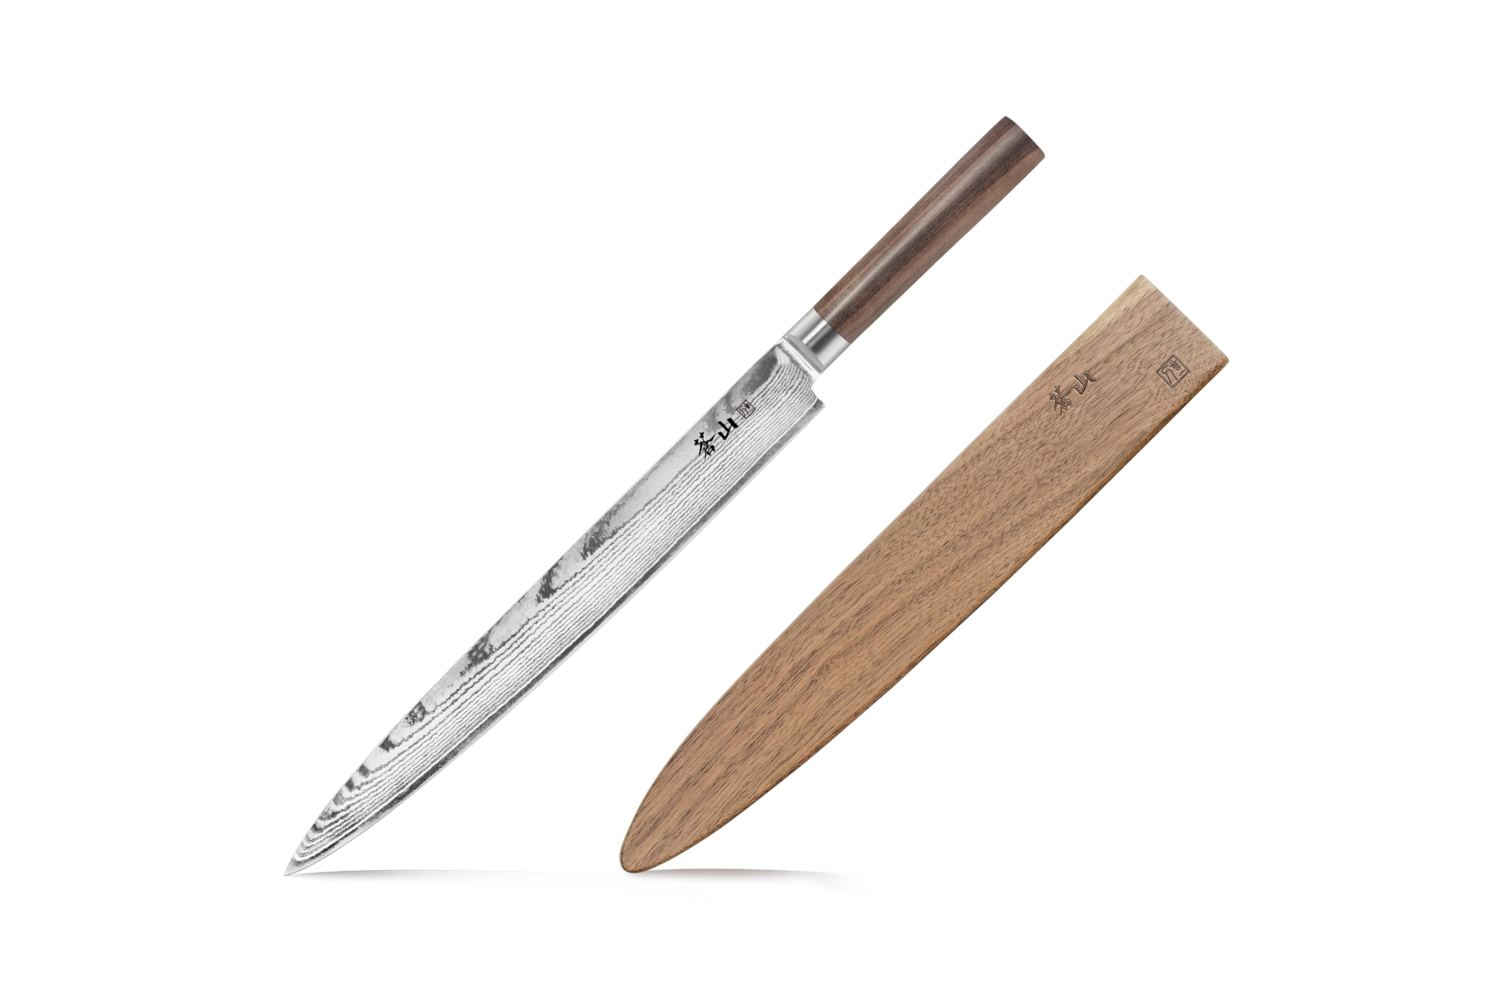 Cangshan J Series 12 inch Sashimi Chef's Knife w/Walnut Sheath